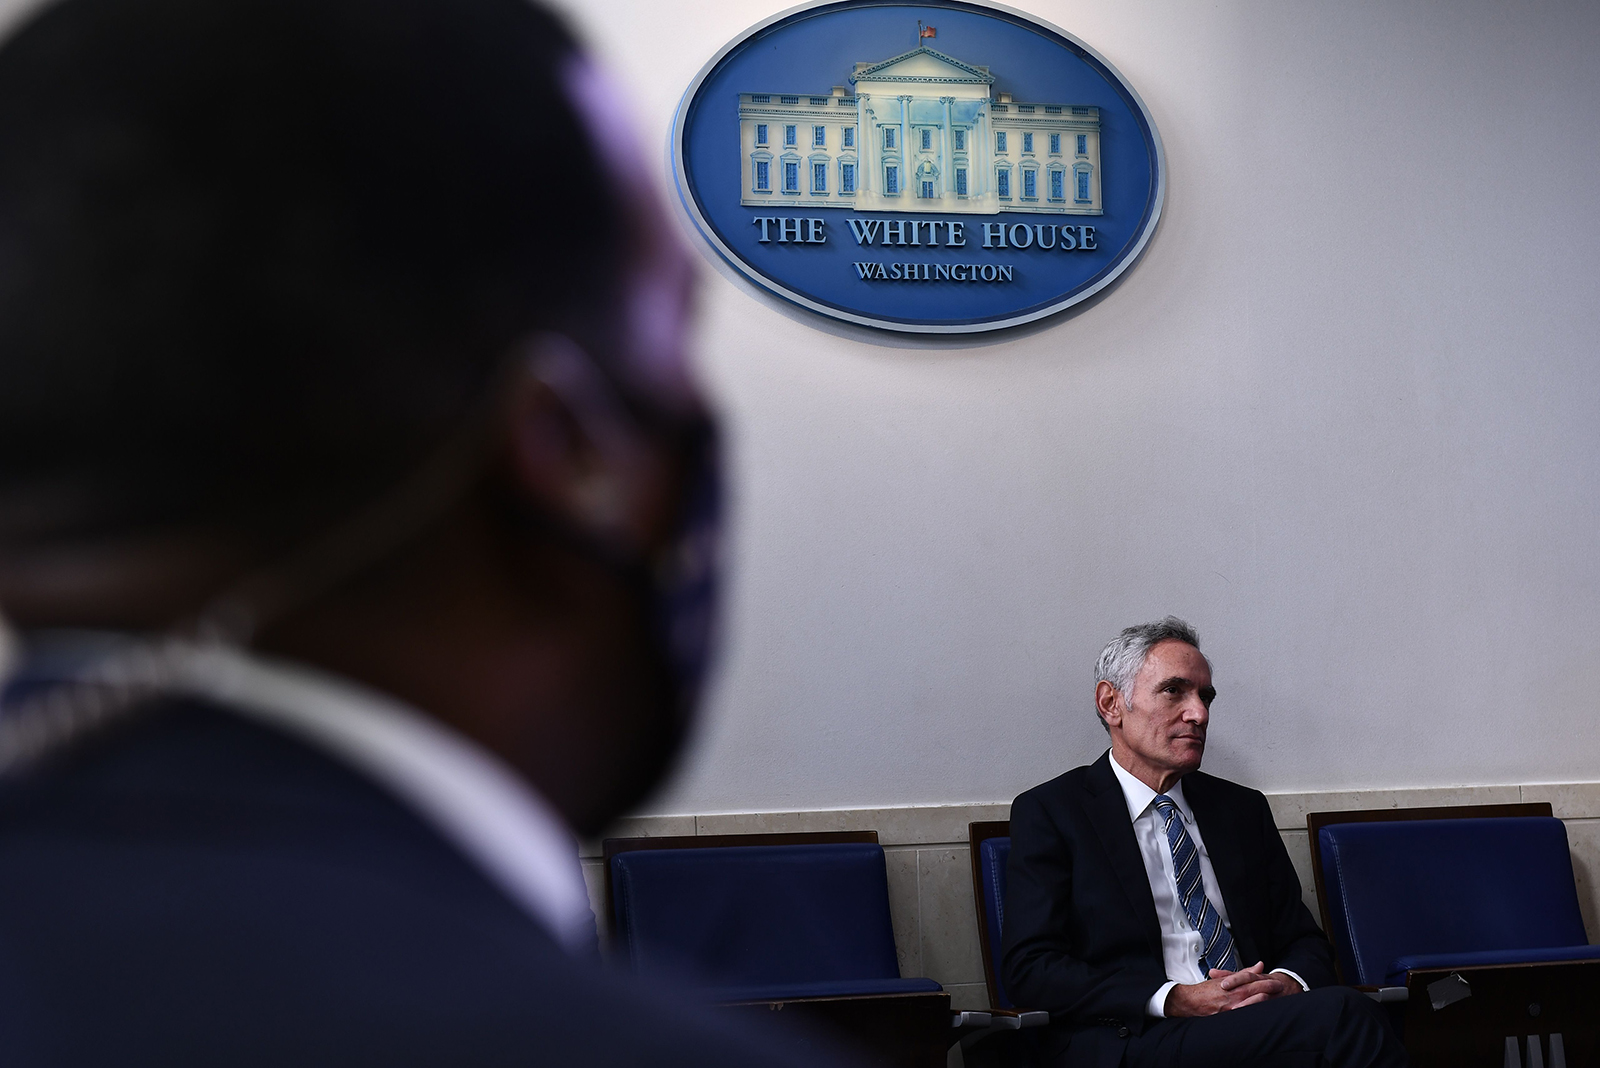 Dr. Scott Atlas listens as President Donald Trump speaks during a news conference in the Brady Briefing Room of the White House in Washington on August 13.